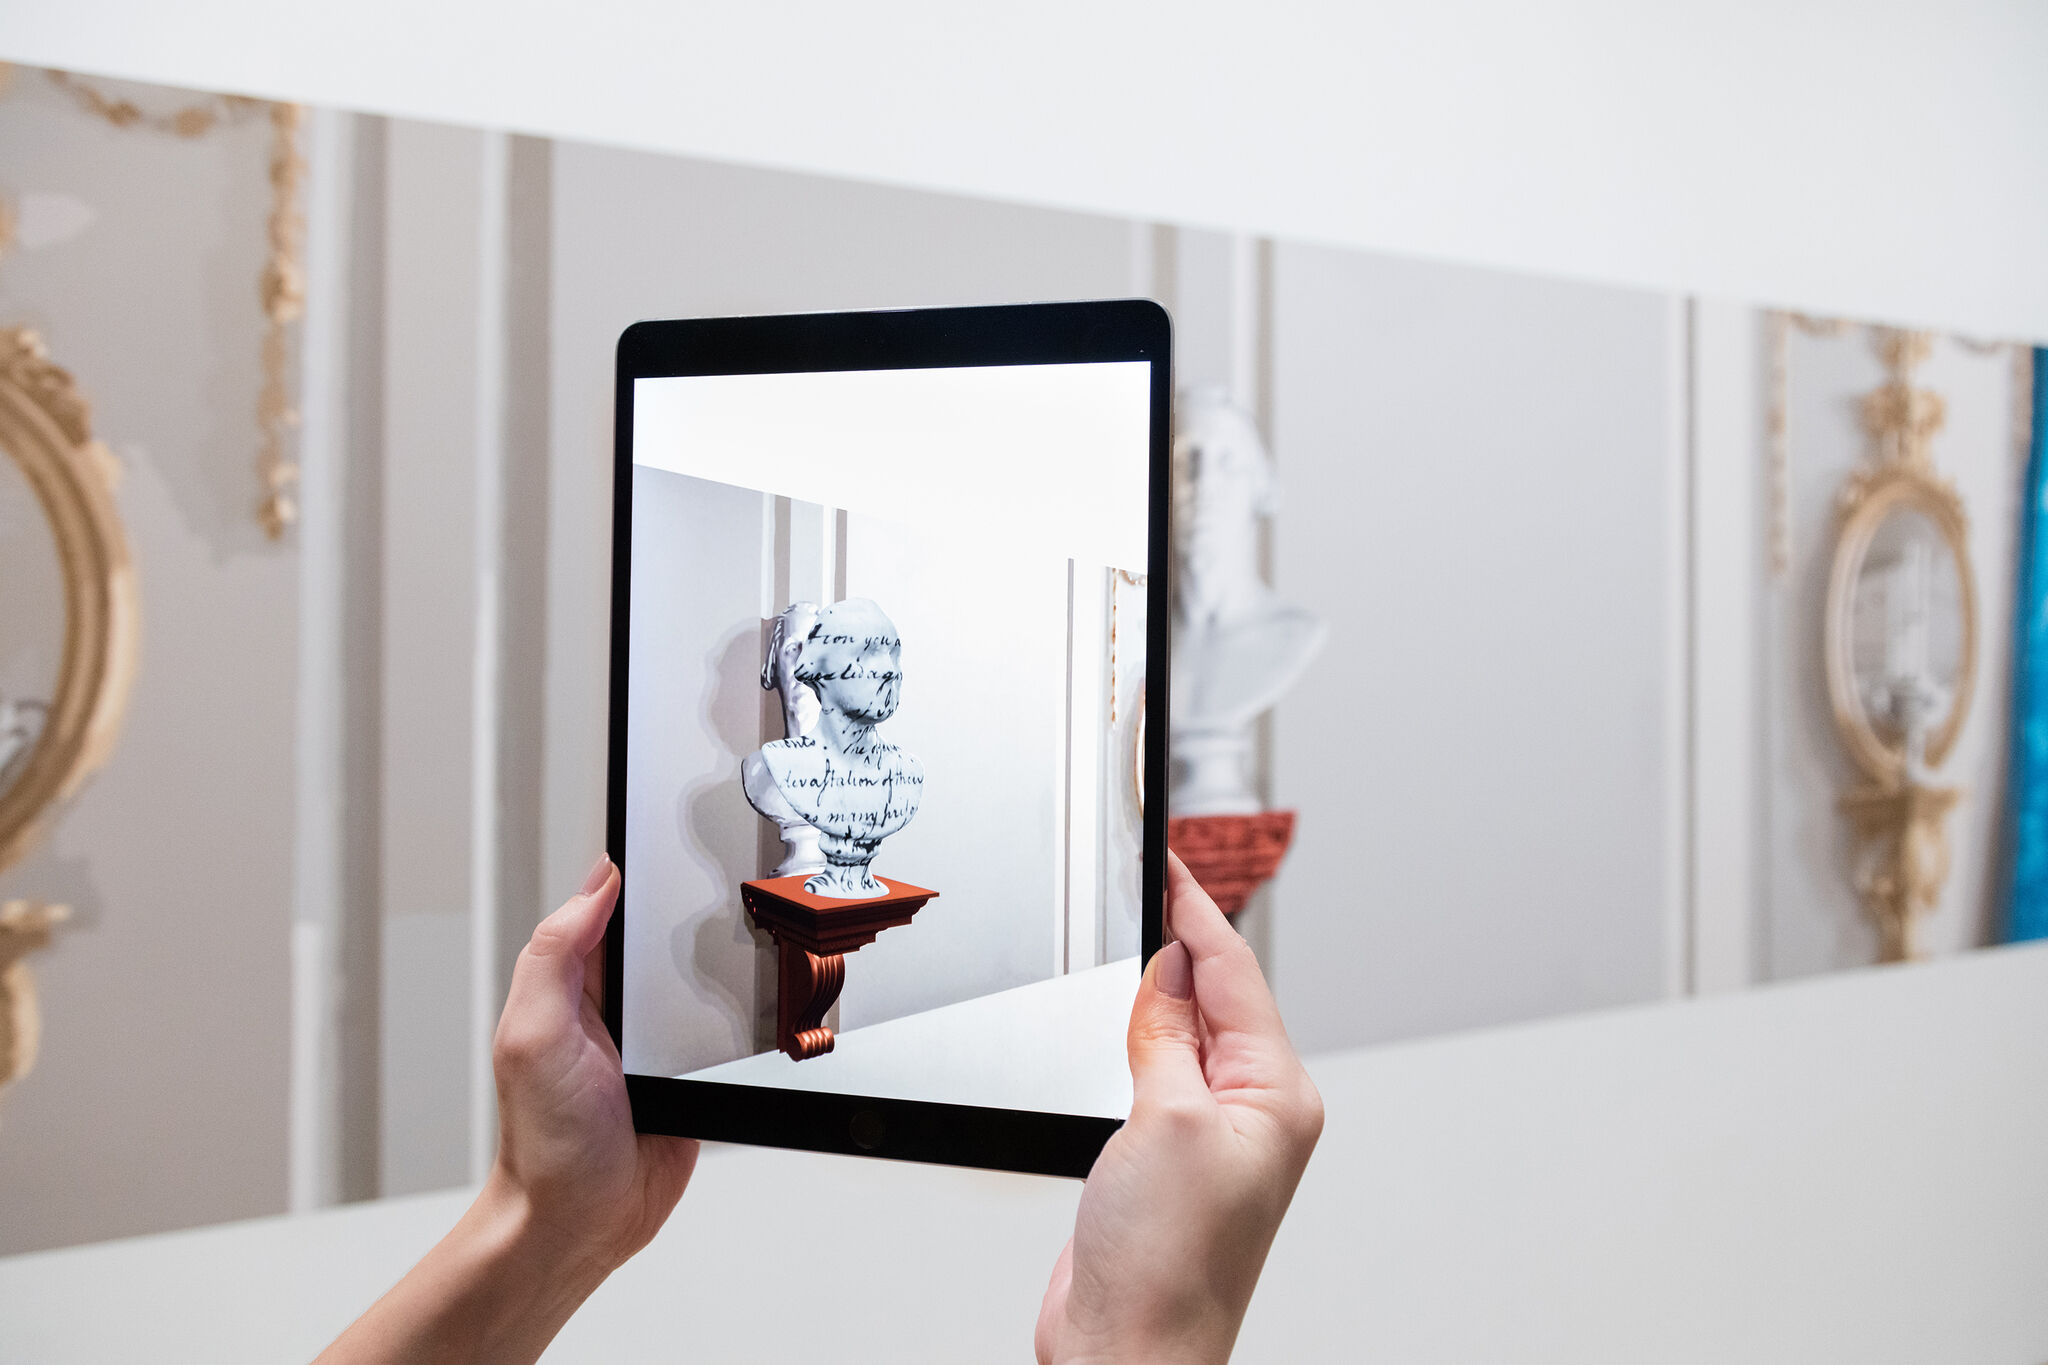 Hands holding a tablet with an augmented reality app showing a 3D view of the artwork in front of it.